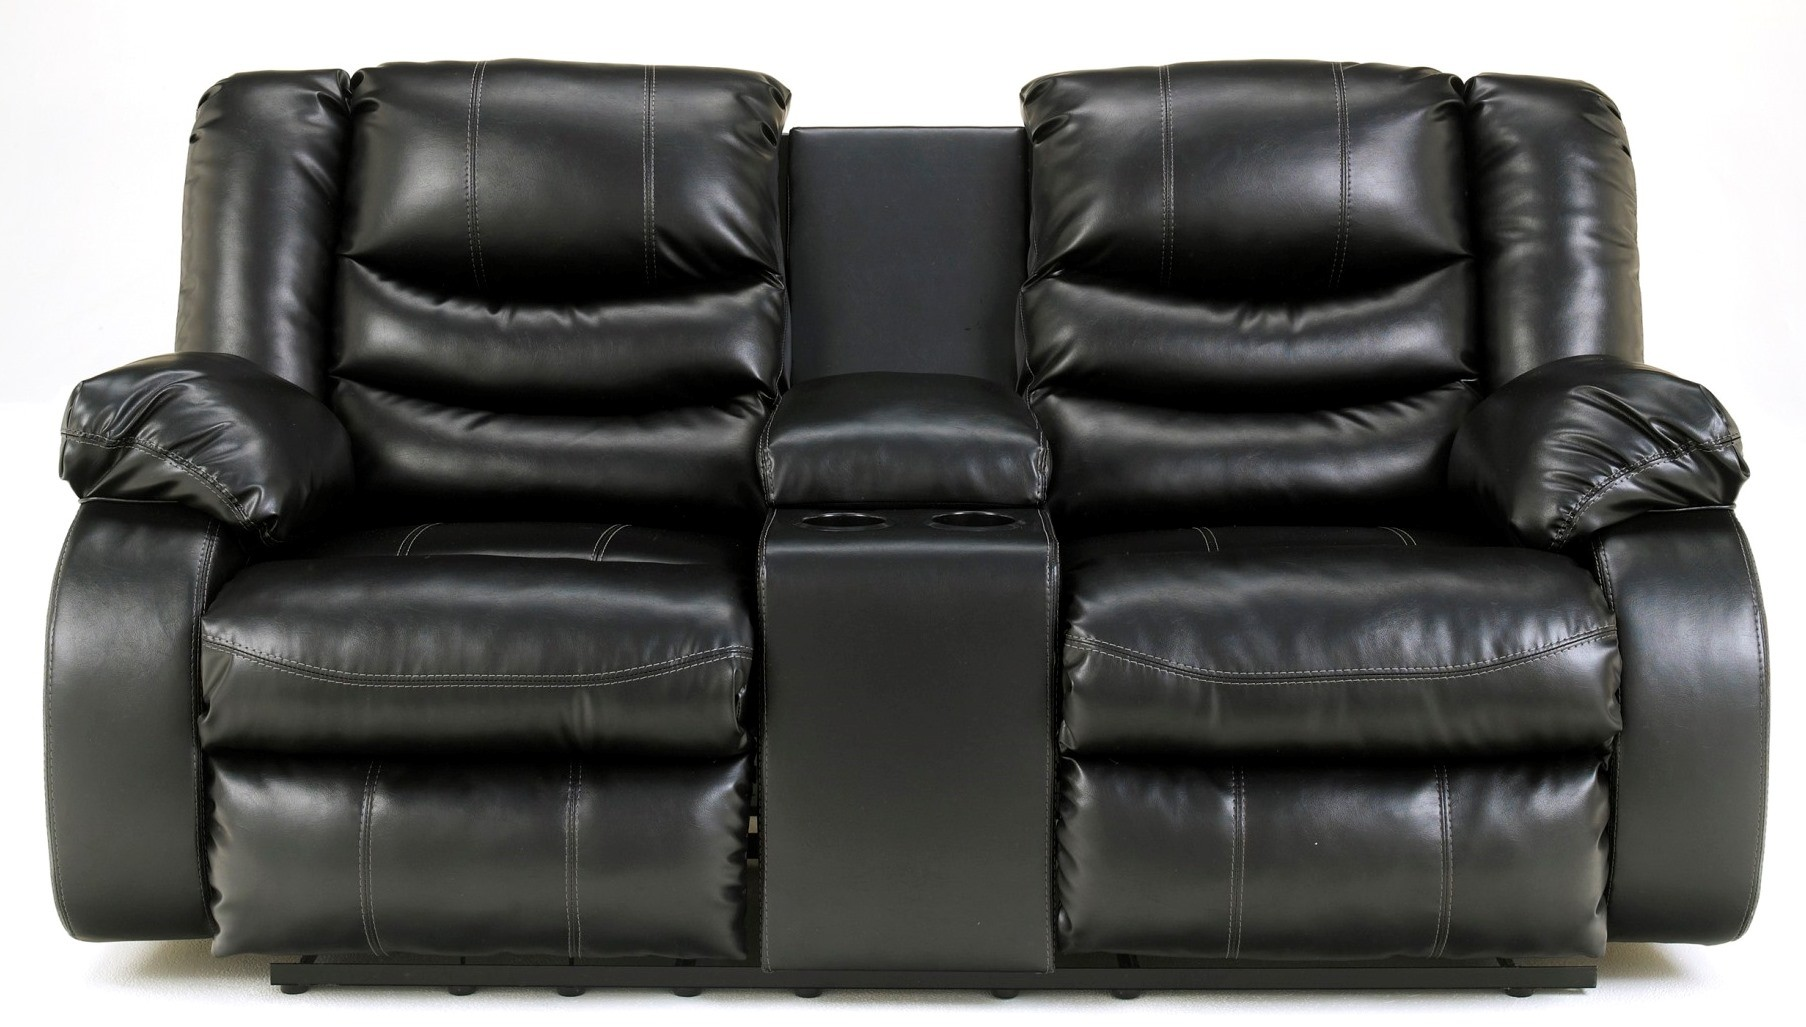 Linebacker Durablend Black Double Reclining Loveseat With Console From Ashley 9520294